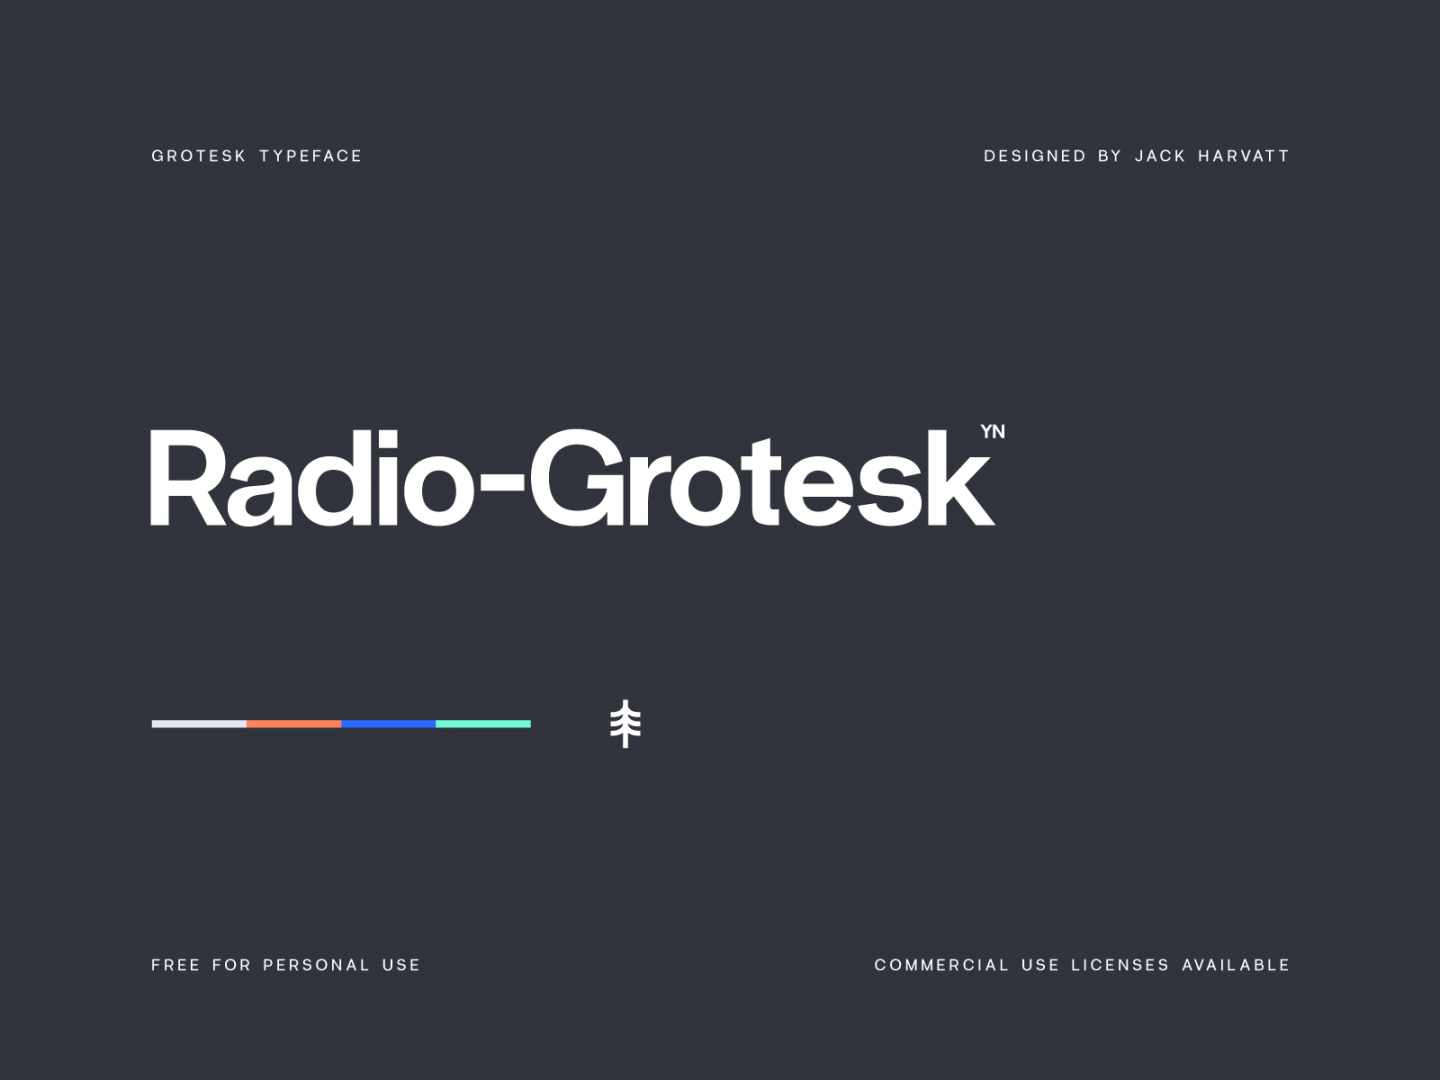 A preview of the Radio-Grotesk font face.